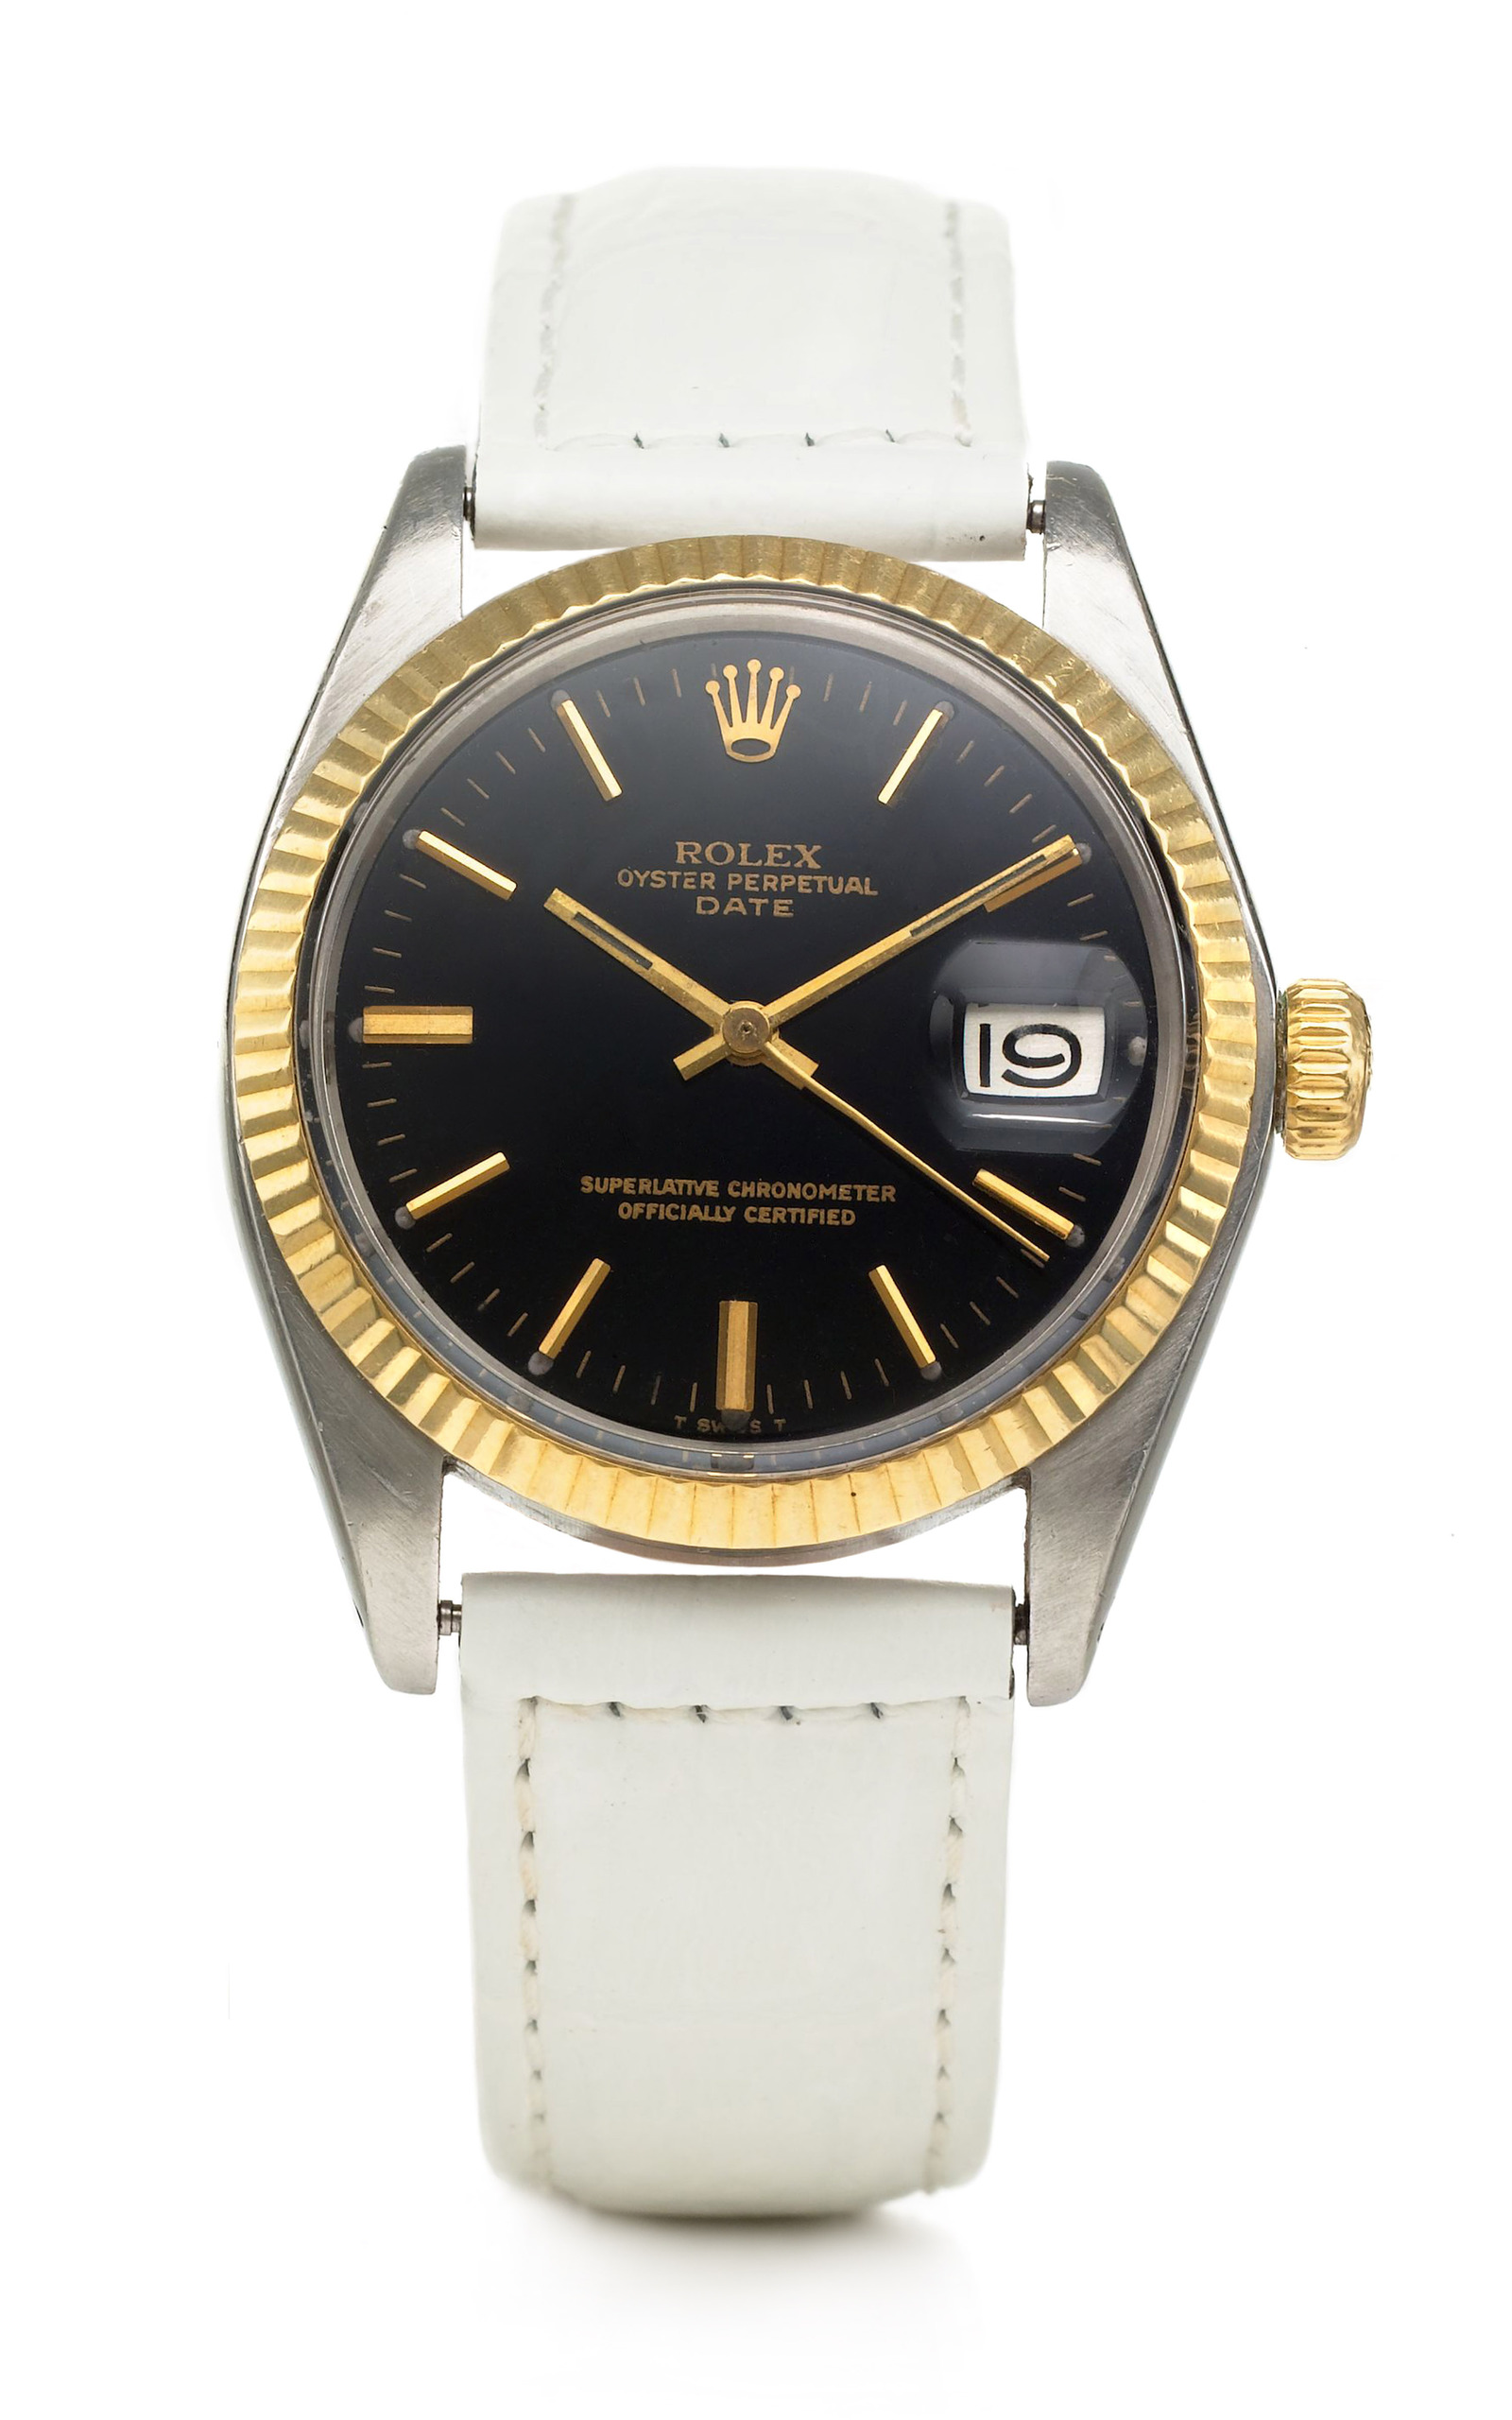 Rolex Oyster Perpetual DateJust Black Face Watch by | Moda ...